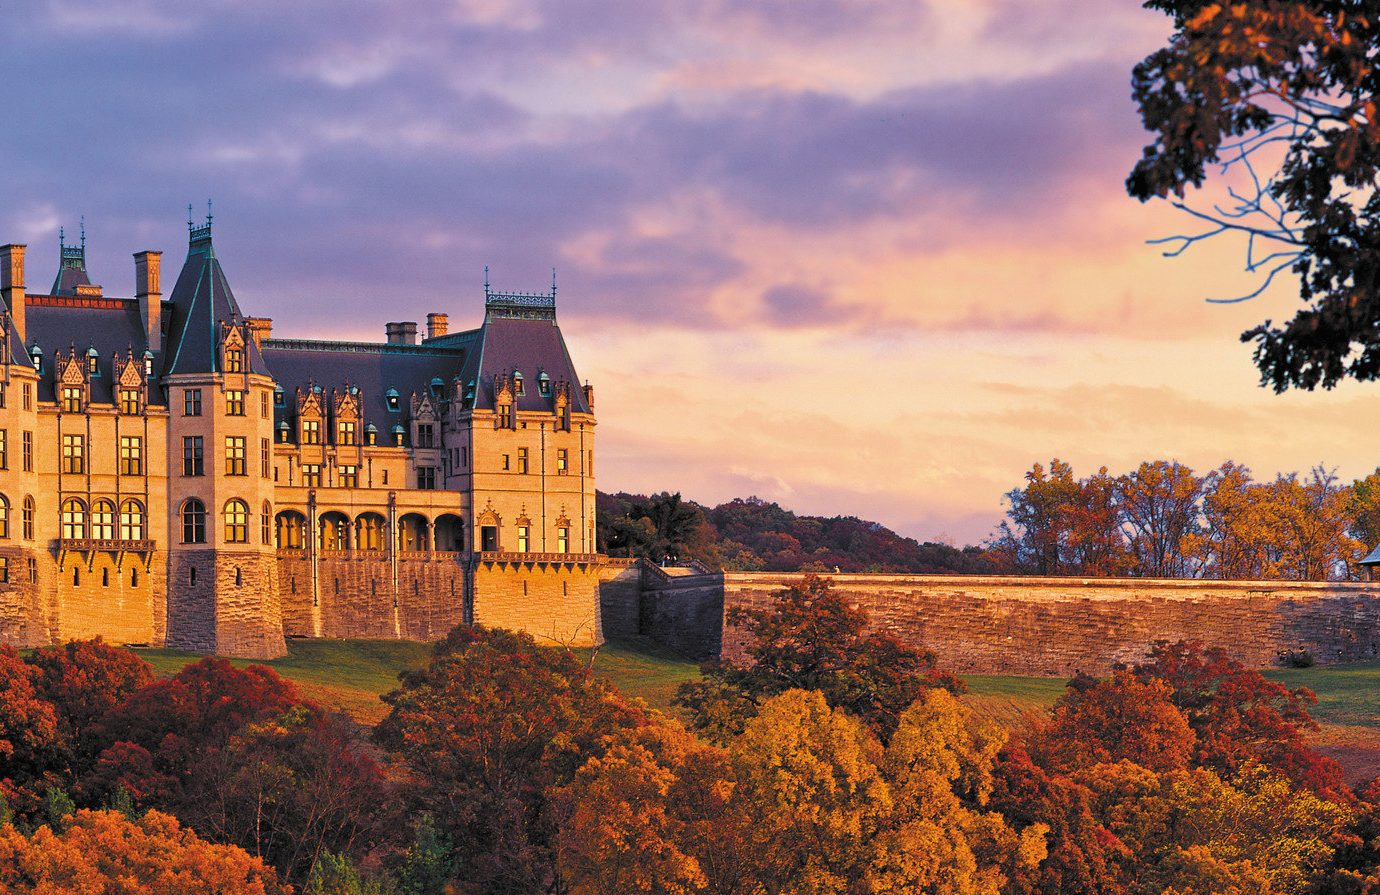 Architecture autumn building Elegant Exterior extravagant Fall fall colors Fall leaves fancy foliage golden hour Greenery Historic Hotels isolation Luxury Nature Outdoors regal remote Road Trips Scenic views sophisticated Sunset trees Trip Ideas view Weekend Getaways tree outdoor sky season City evening human settlement cityscape plant morning castle leaf woody plant flower reflection dusk château skyline